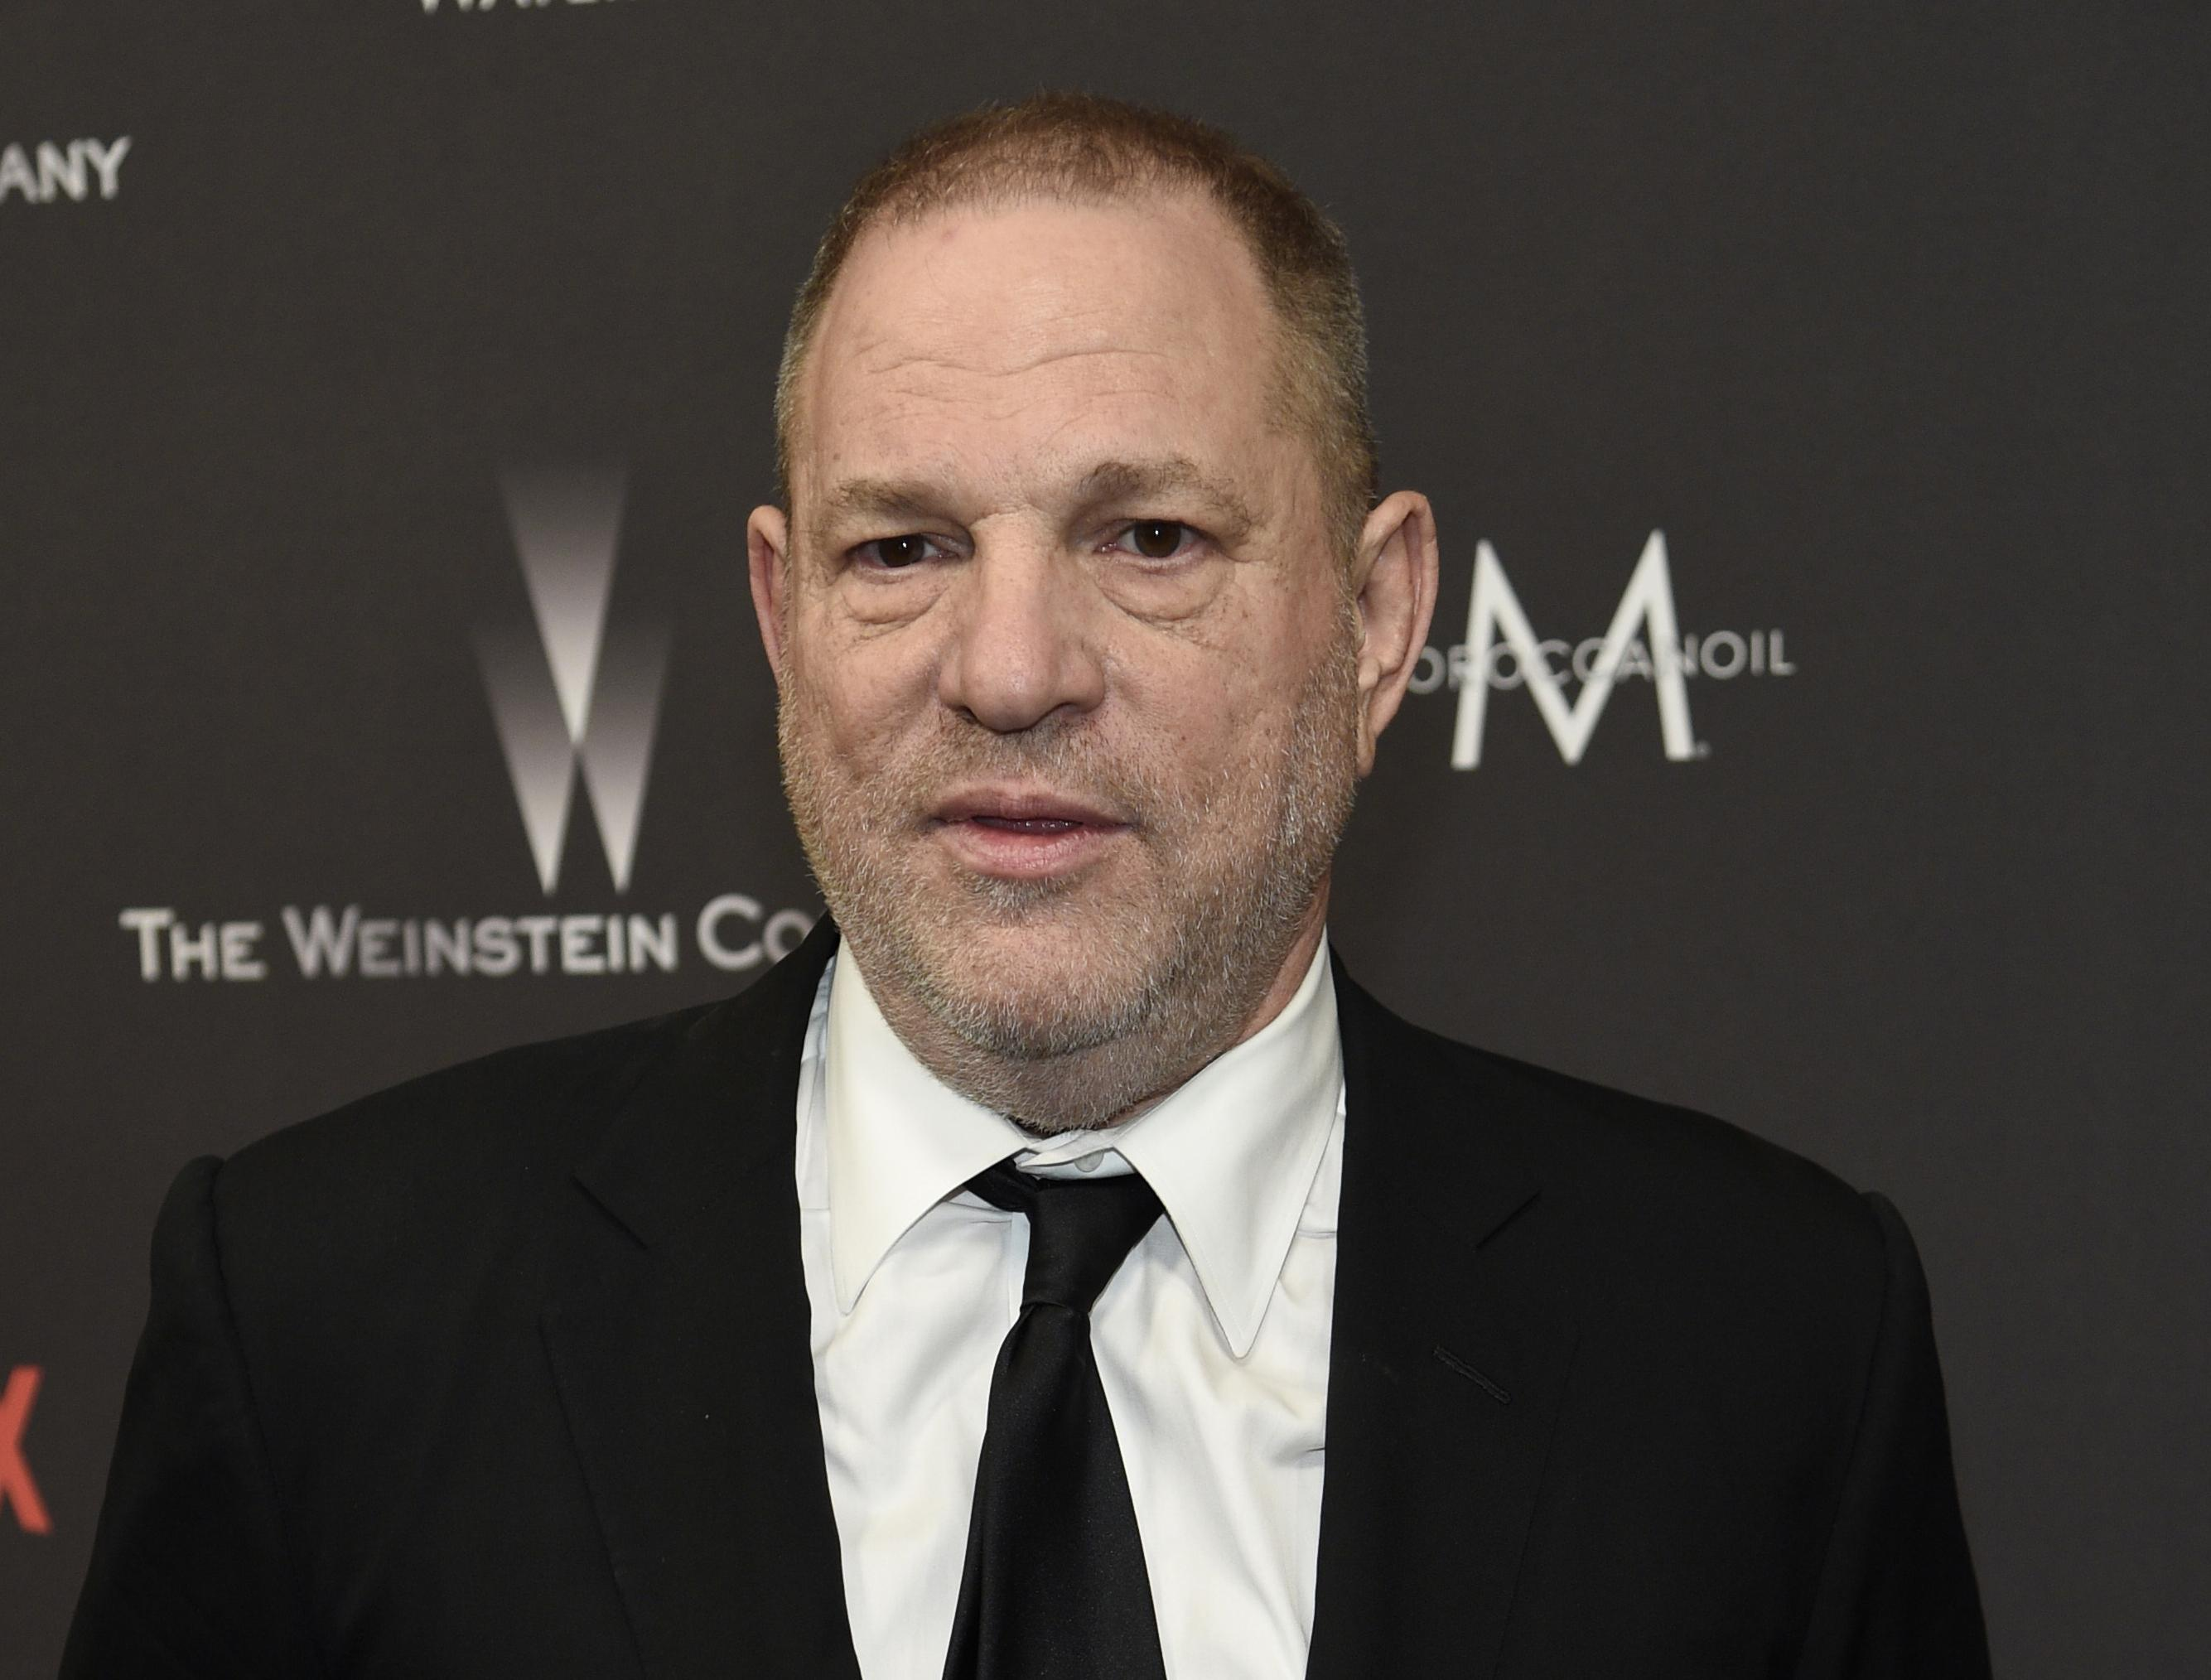 Paradise Papers: c'è anche Weinstein